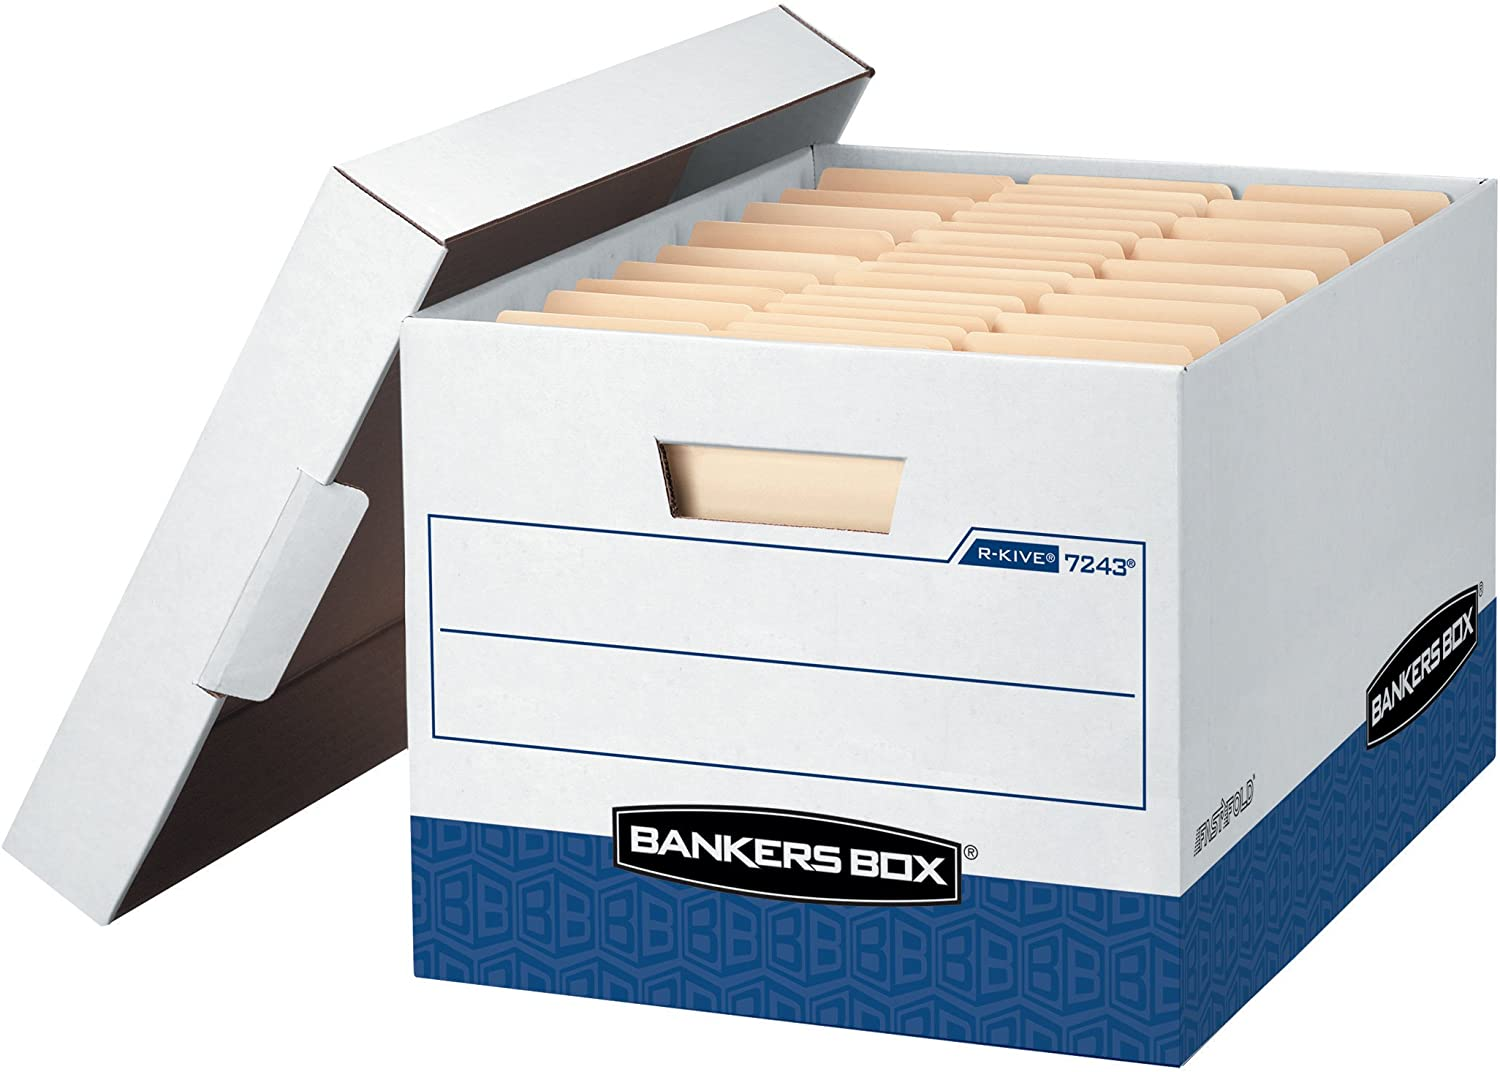 Bankers Box R-Kive Heavy-Duty Storage Boxes, FastFold, Lift-Off Lid, Letter/Legal, Case of 12 (07243)